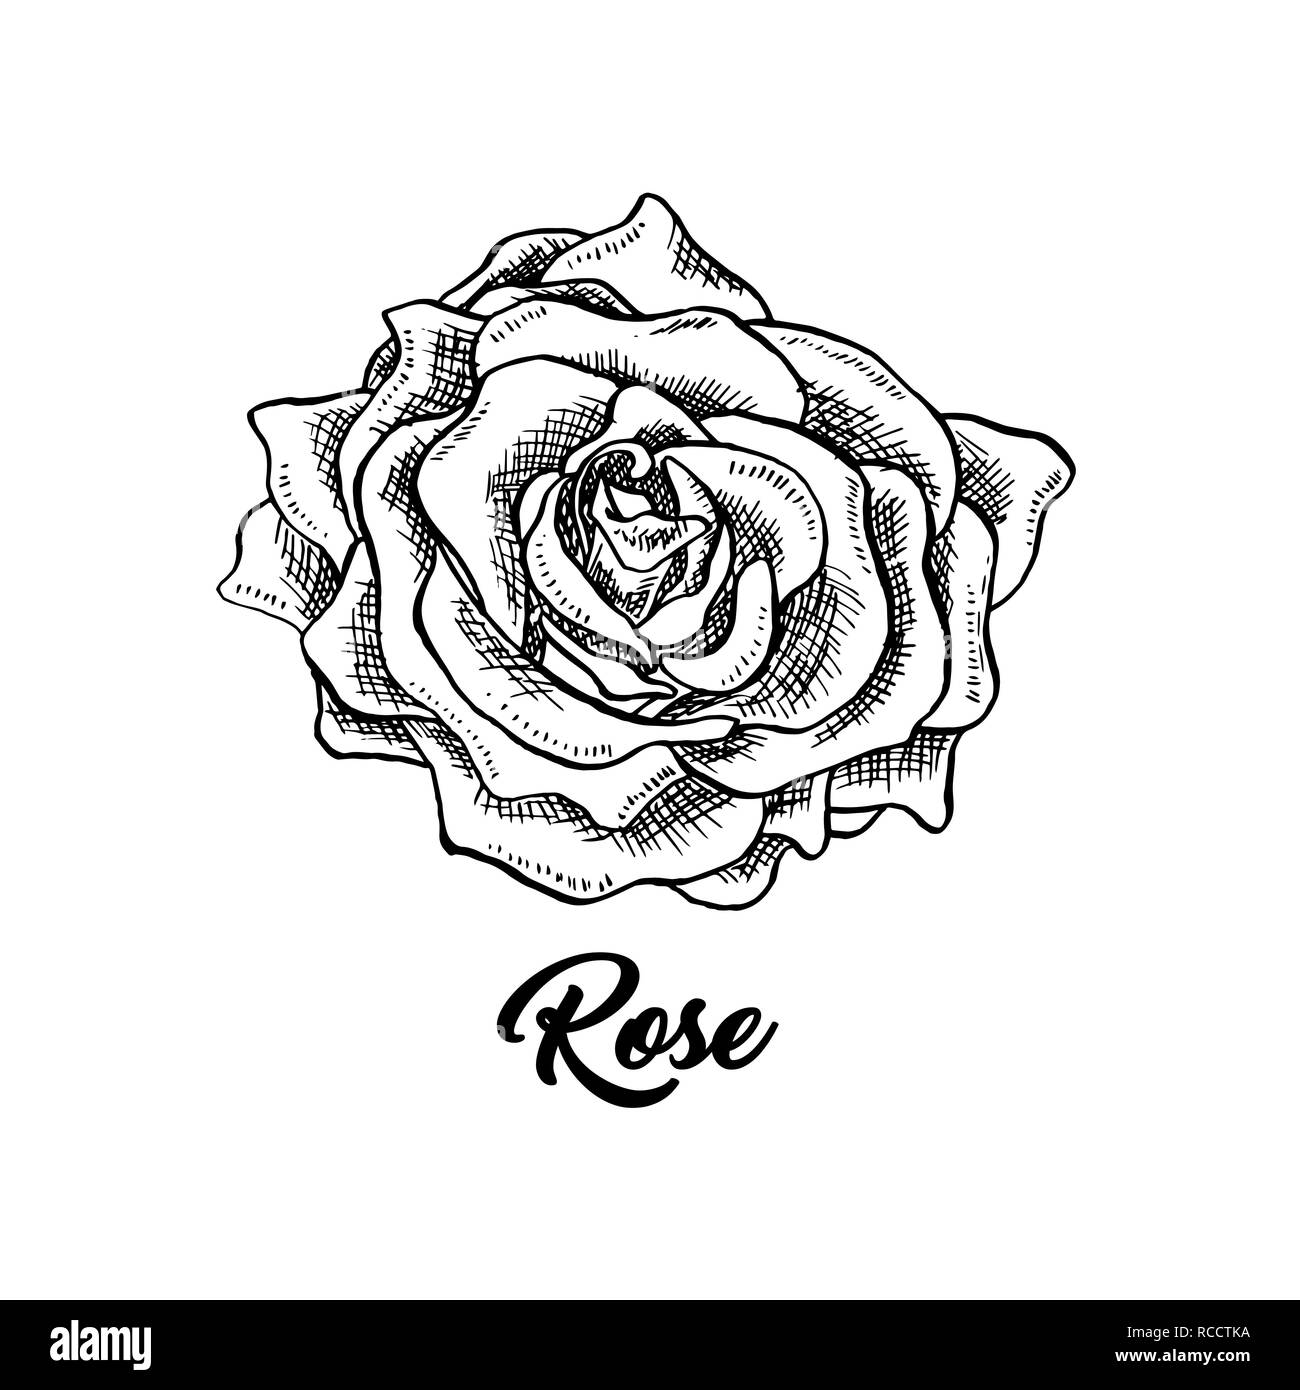 rose wine flower hand drawn vector illustration floral ink pen clipart black and white realistic rosebud outline drawing rose wine sketch with lettering logo emblem label isolated design element stock vector image https www alamy com rose wine flower hand drawn vector illustration floral ink pen clipart black and white realistic rosebud outline drawing rose wine sketch with lettering logo emblem label isolated design element image231393438 html